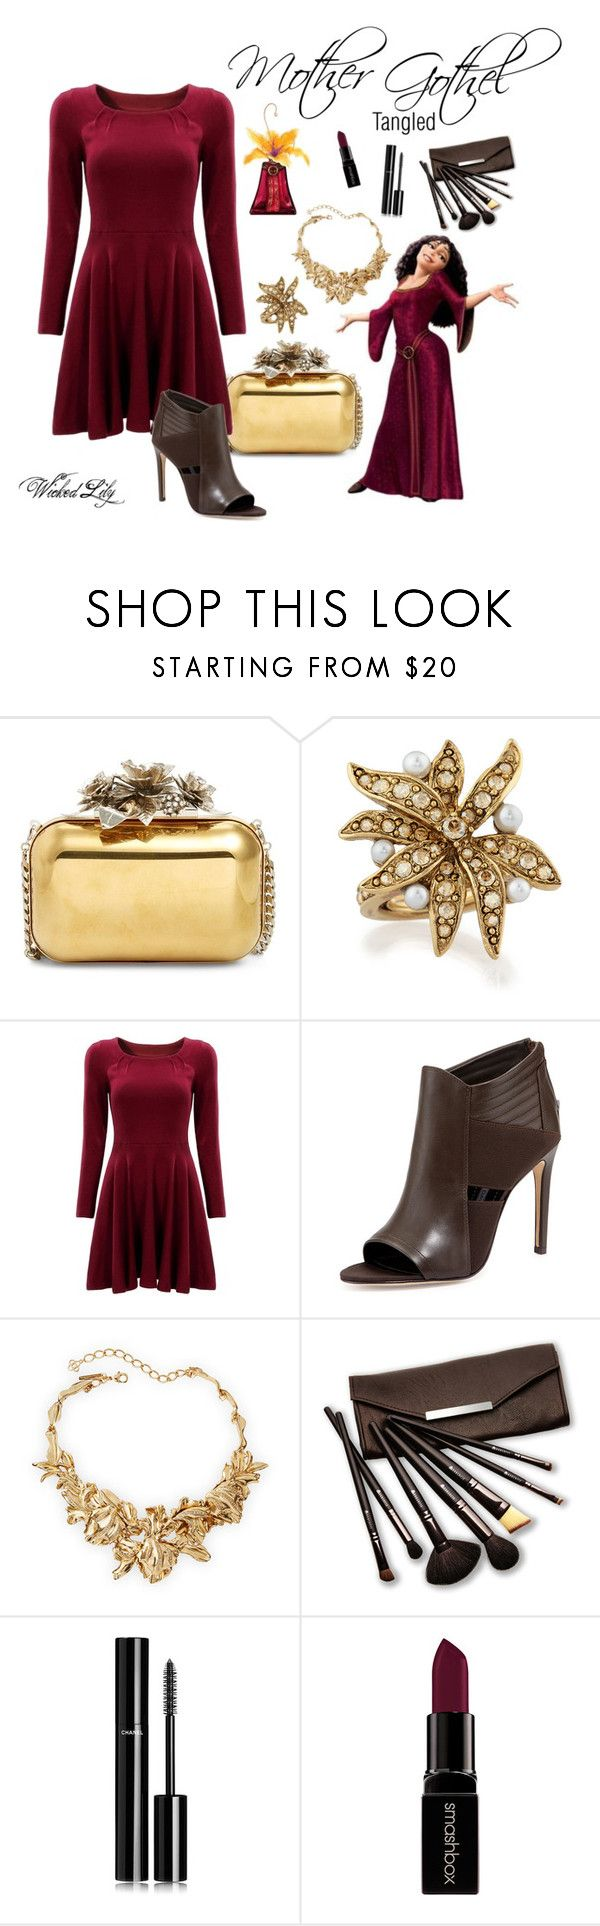 """""""Mother Gothel """"Disney Villains"""""""" by le-piano-argent ❤ liked on Polyvore featuring Jimmy Choo, Disney, Oscar de la Renta, Charles David, Borghese, Chanel and Smashbox"""